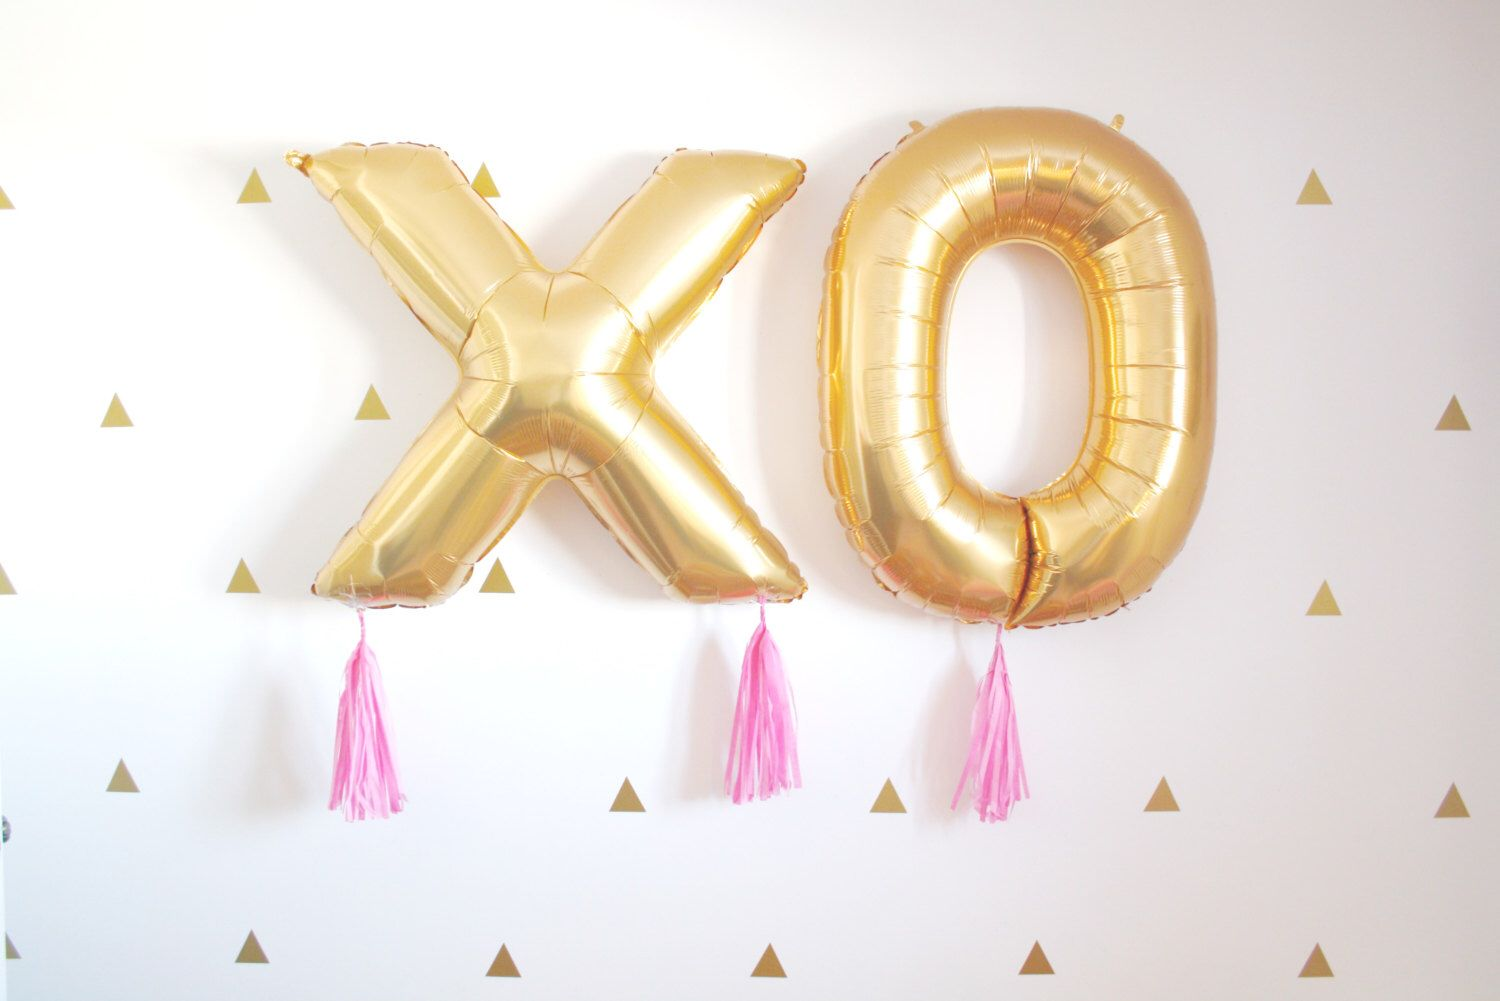 Wedding decorations gold and pink  XOXO Gold Valentines Day Tassel Balloons Love Wedding Decor Photo